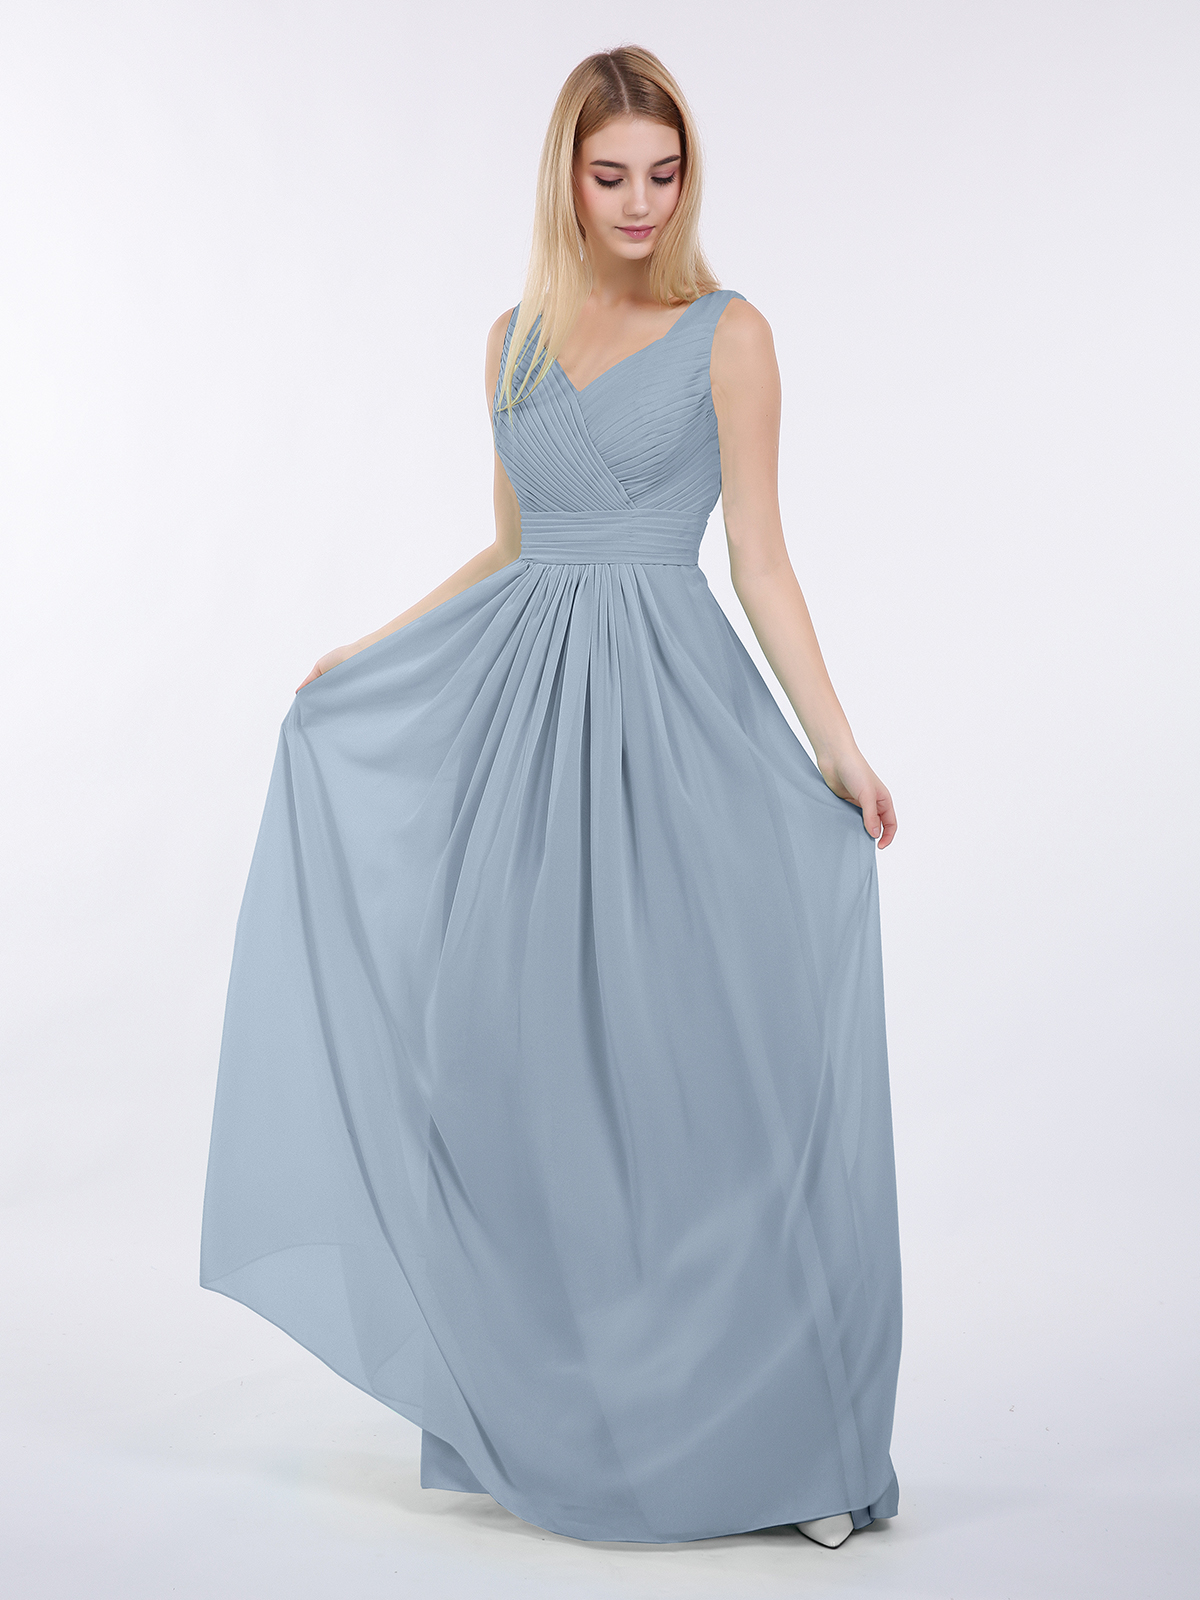 Gorgeous Dusty Blue Bridesmaid Dress made of flowy chiffon with sexy V Neck